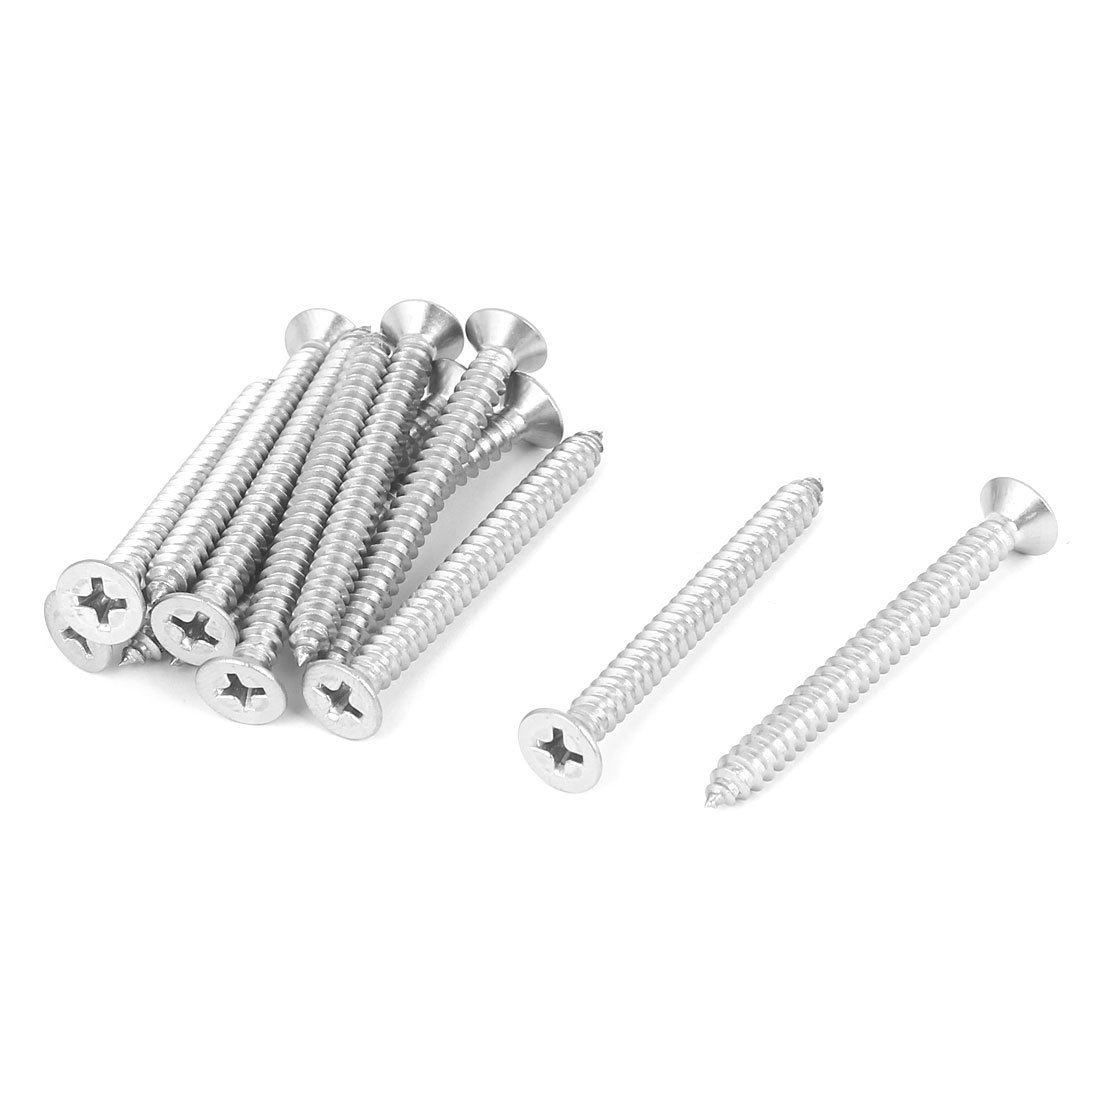 M4.8x50mm 316 Stainless Steel Flat Head Phillips Self Tapping Screws Bolts 12pcs